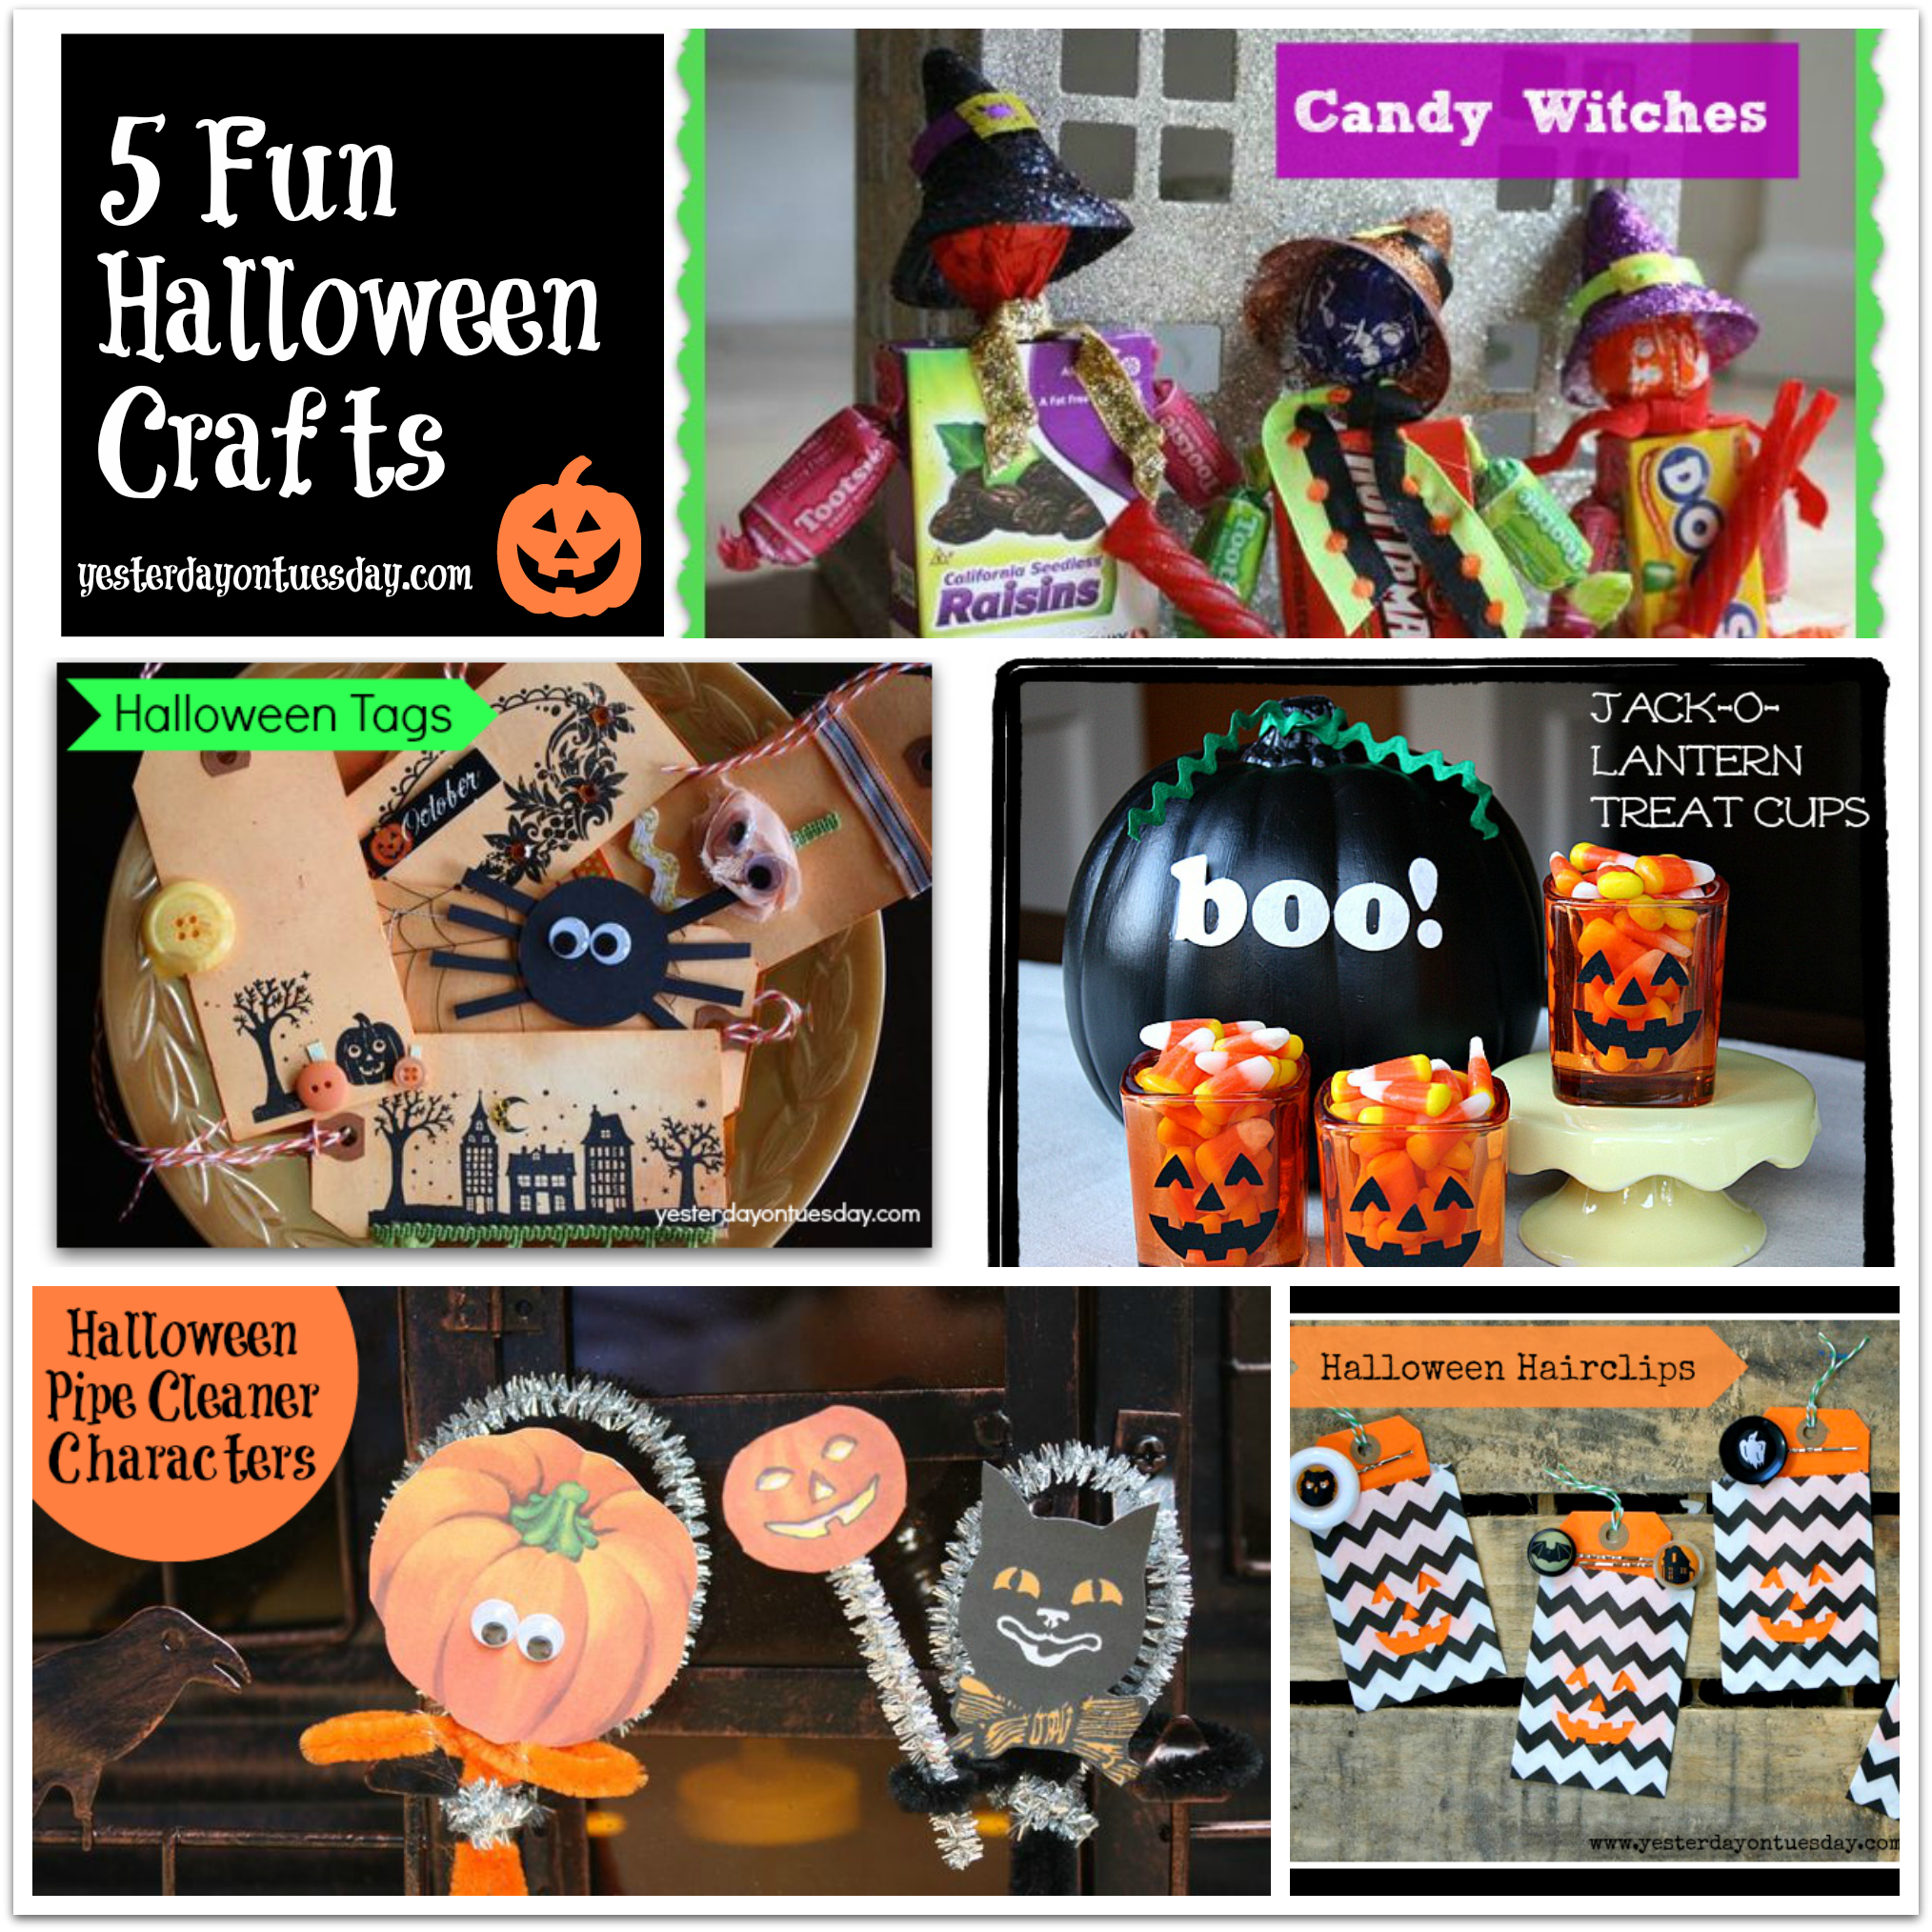 Halloween Crafts And Decorations: 5 Fun Halloween Crafts